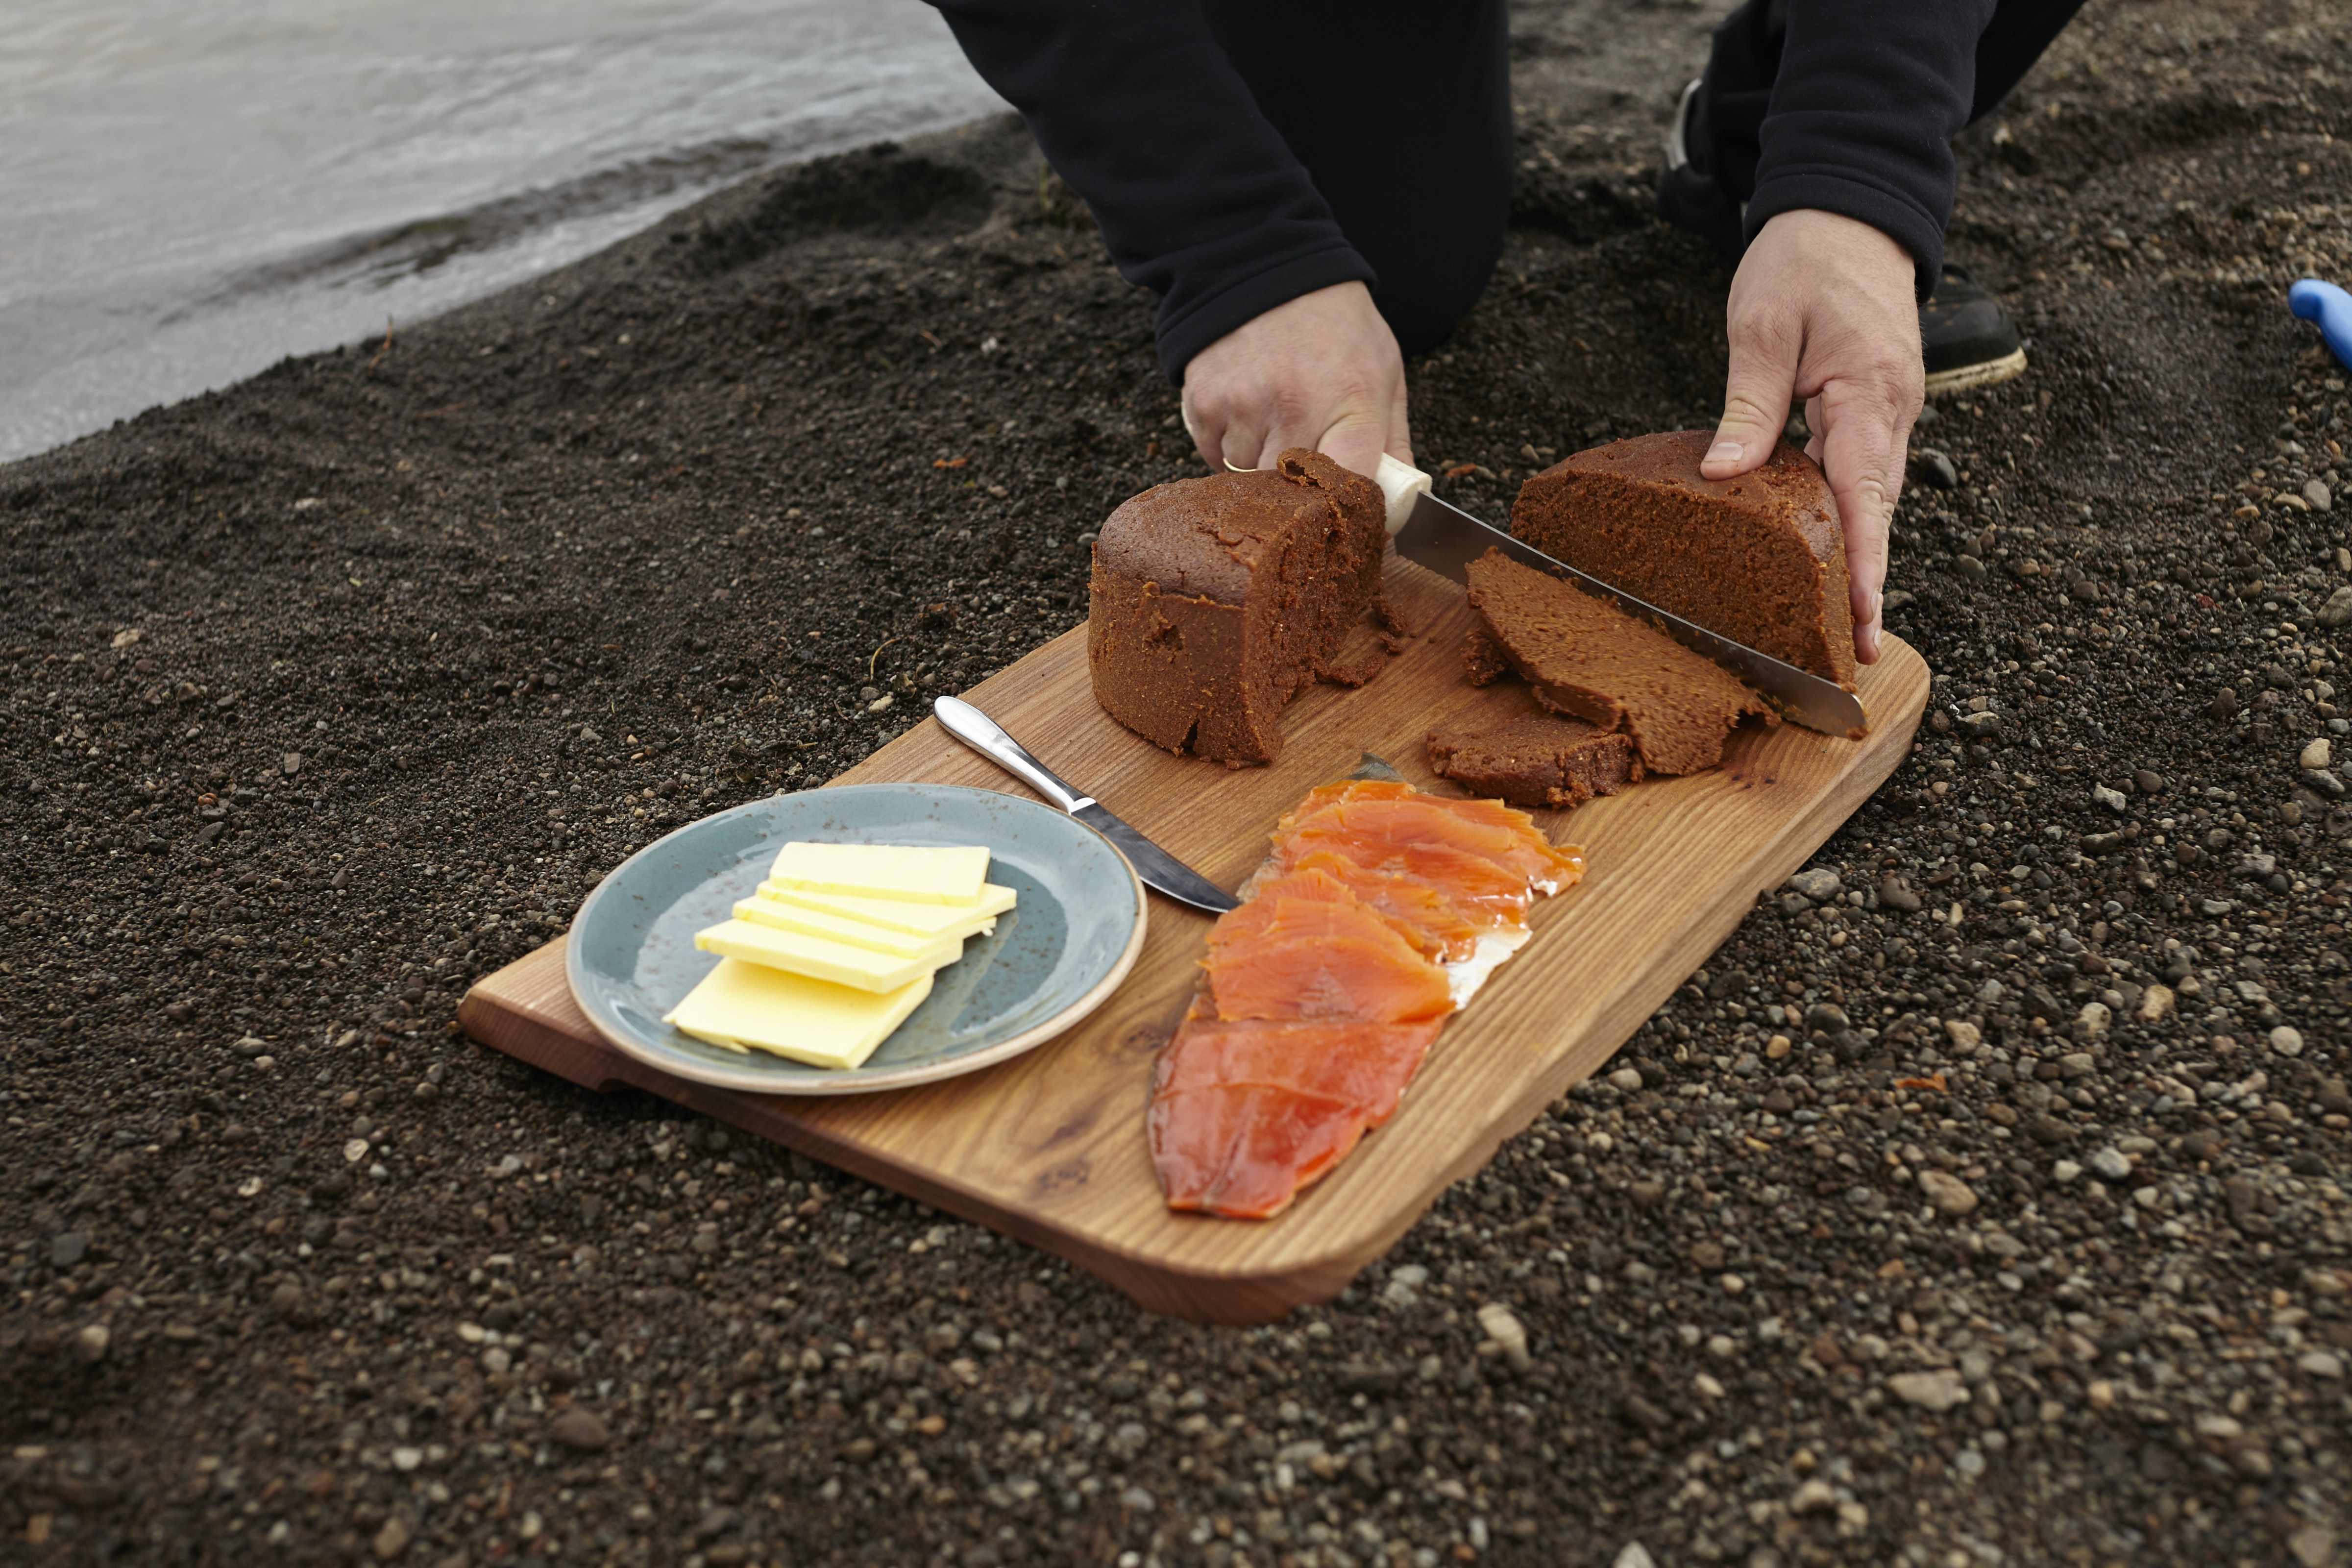 Rye bread made in a hot spring, served with smoked salmon